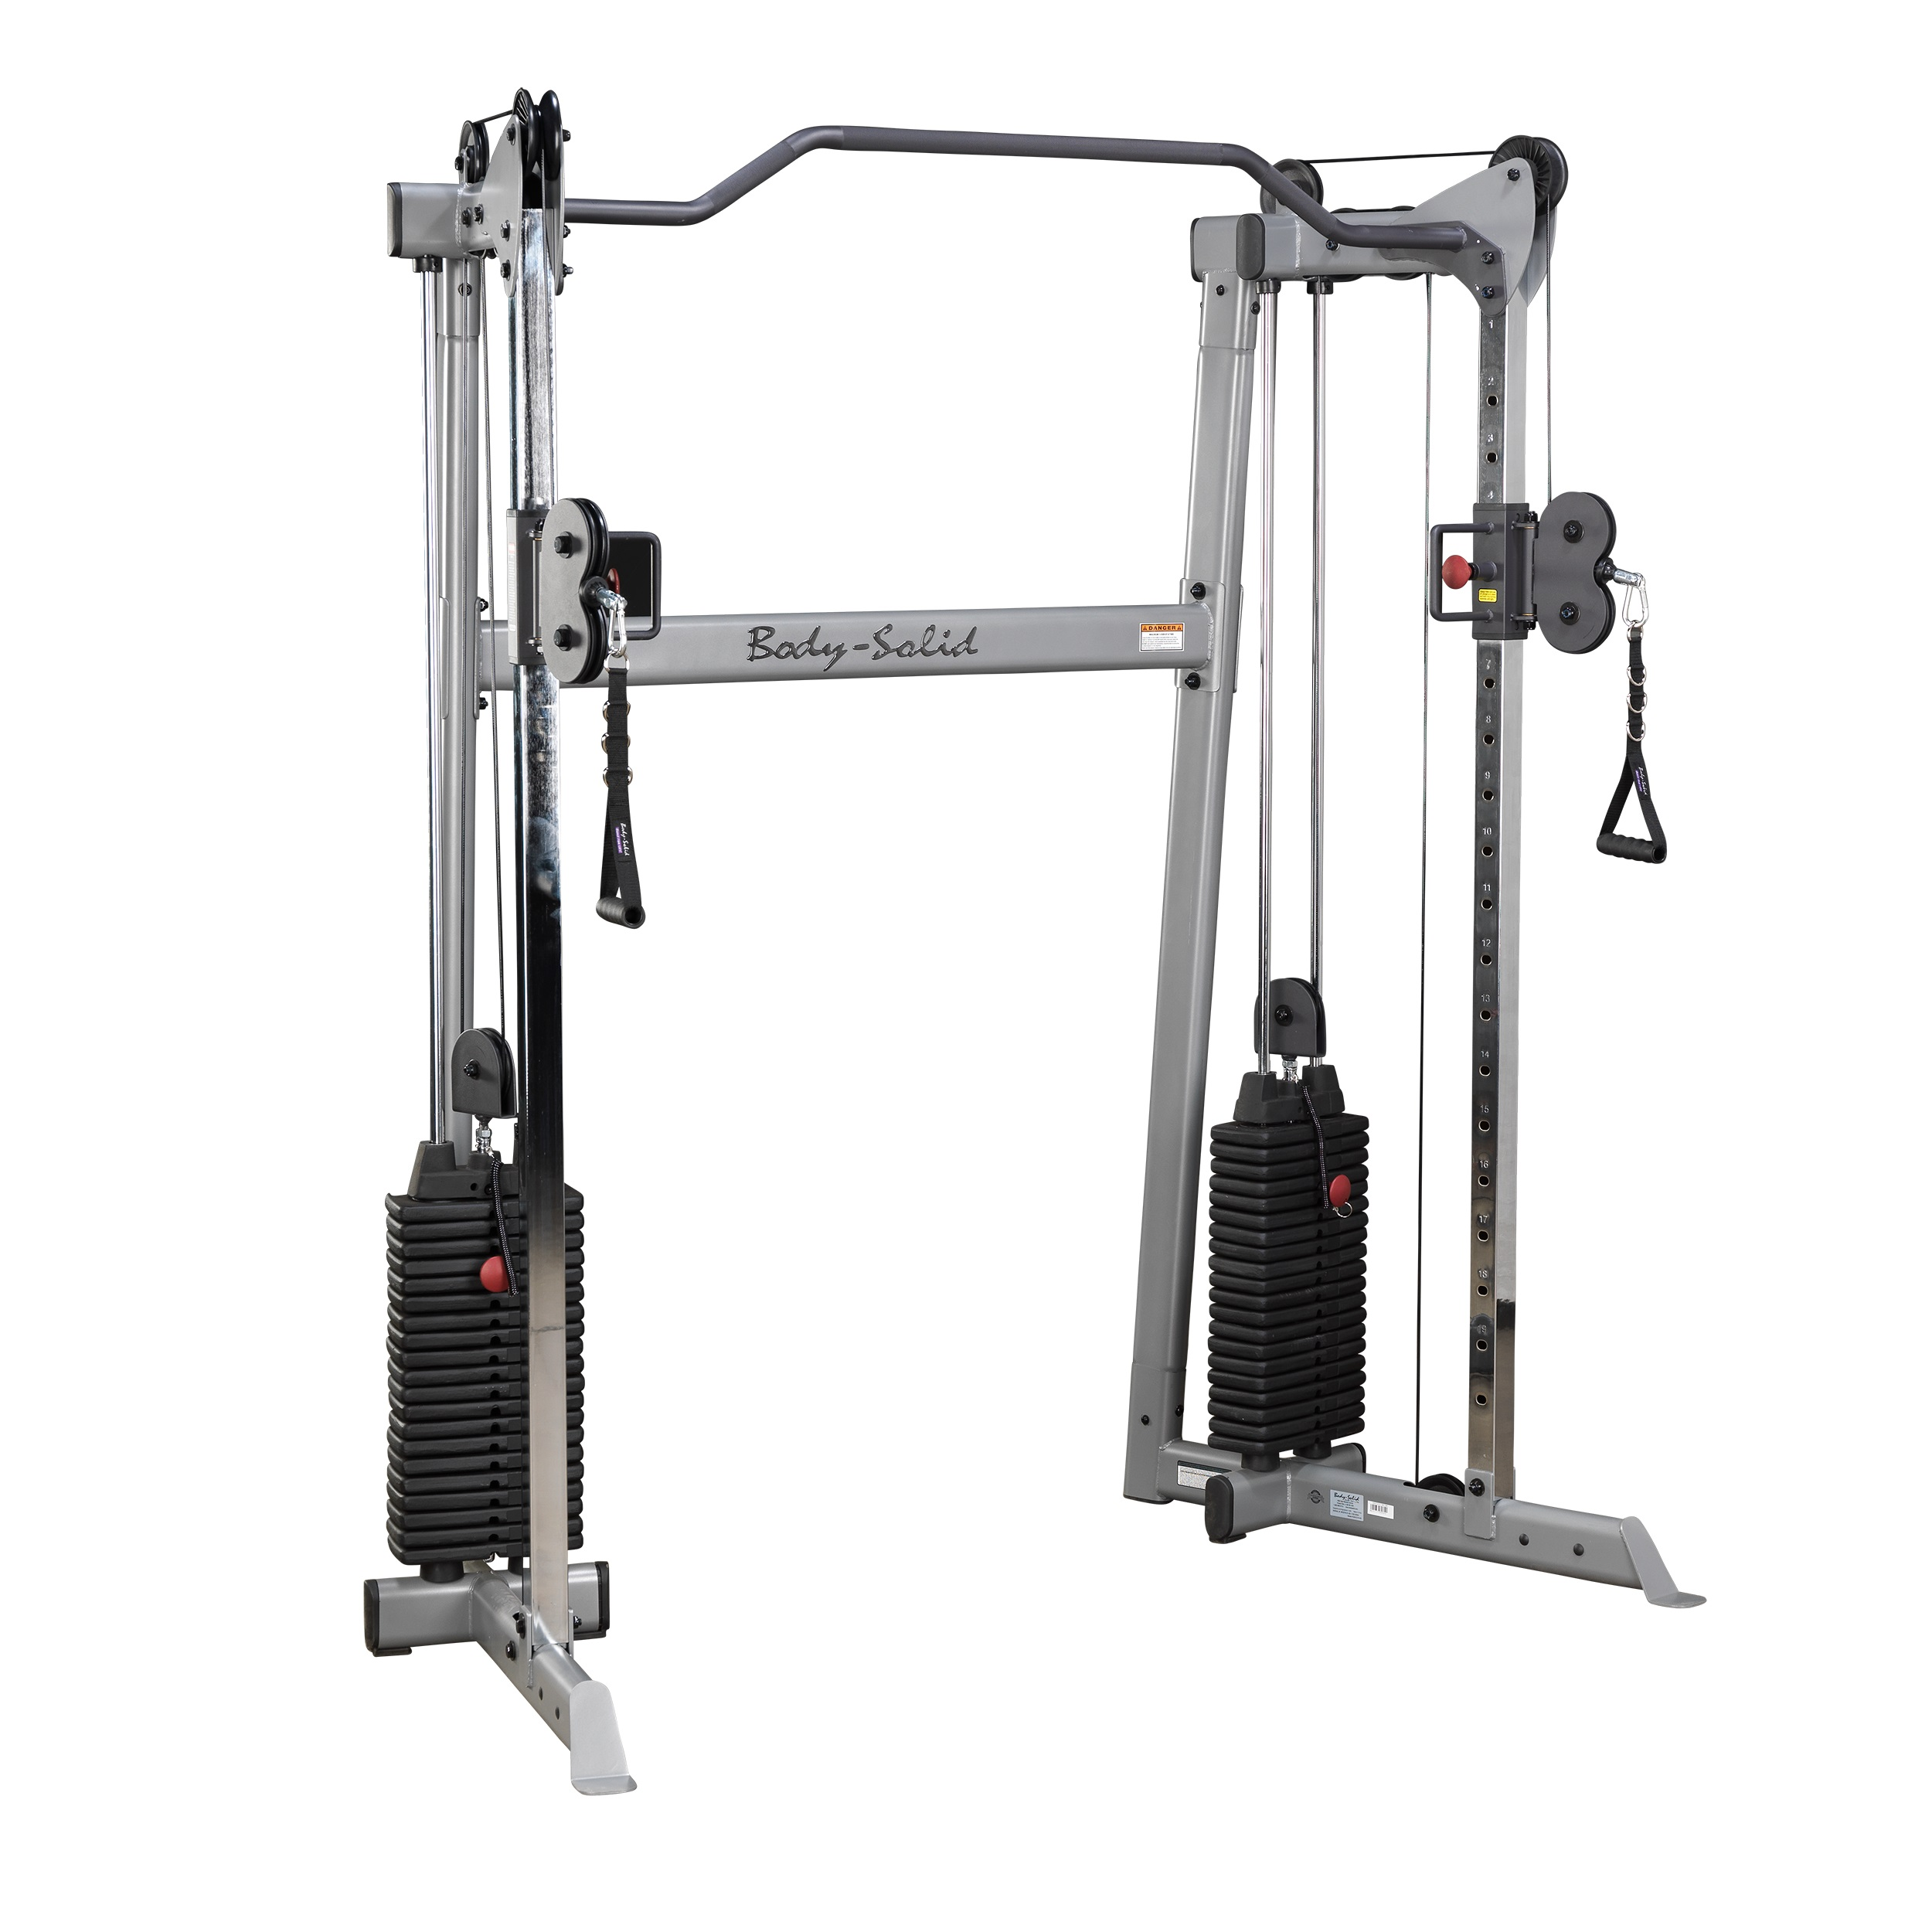 Bodysolid Multifunctioneel trainingssysteem op basis van katrollen